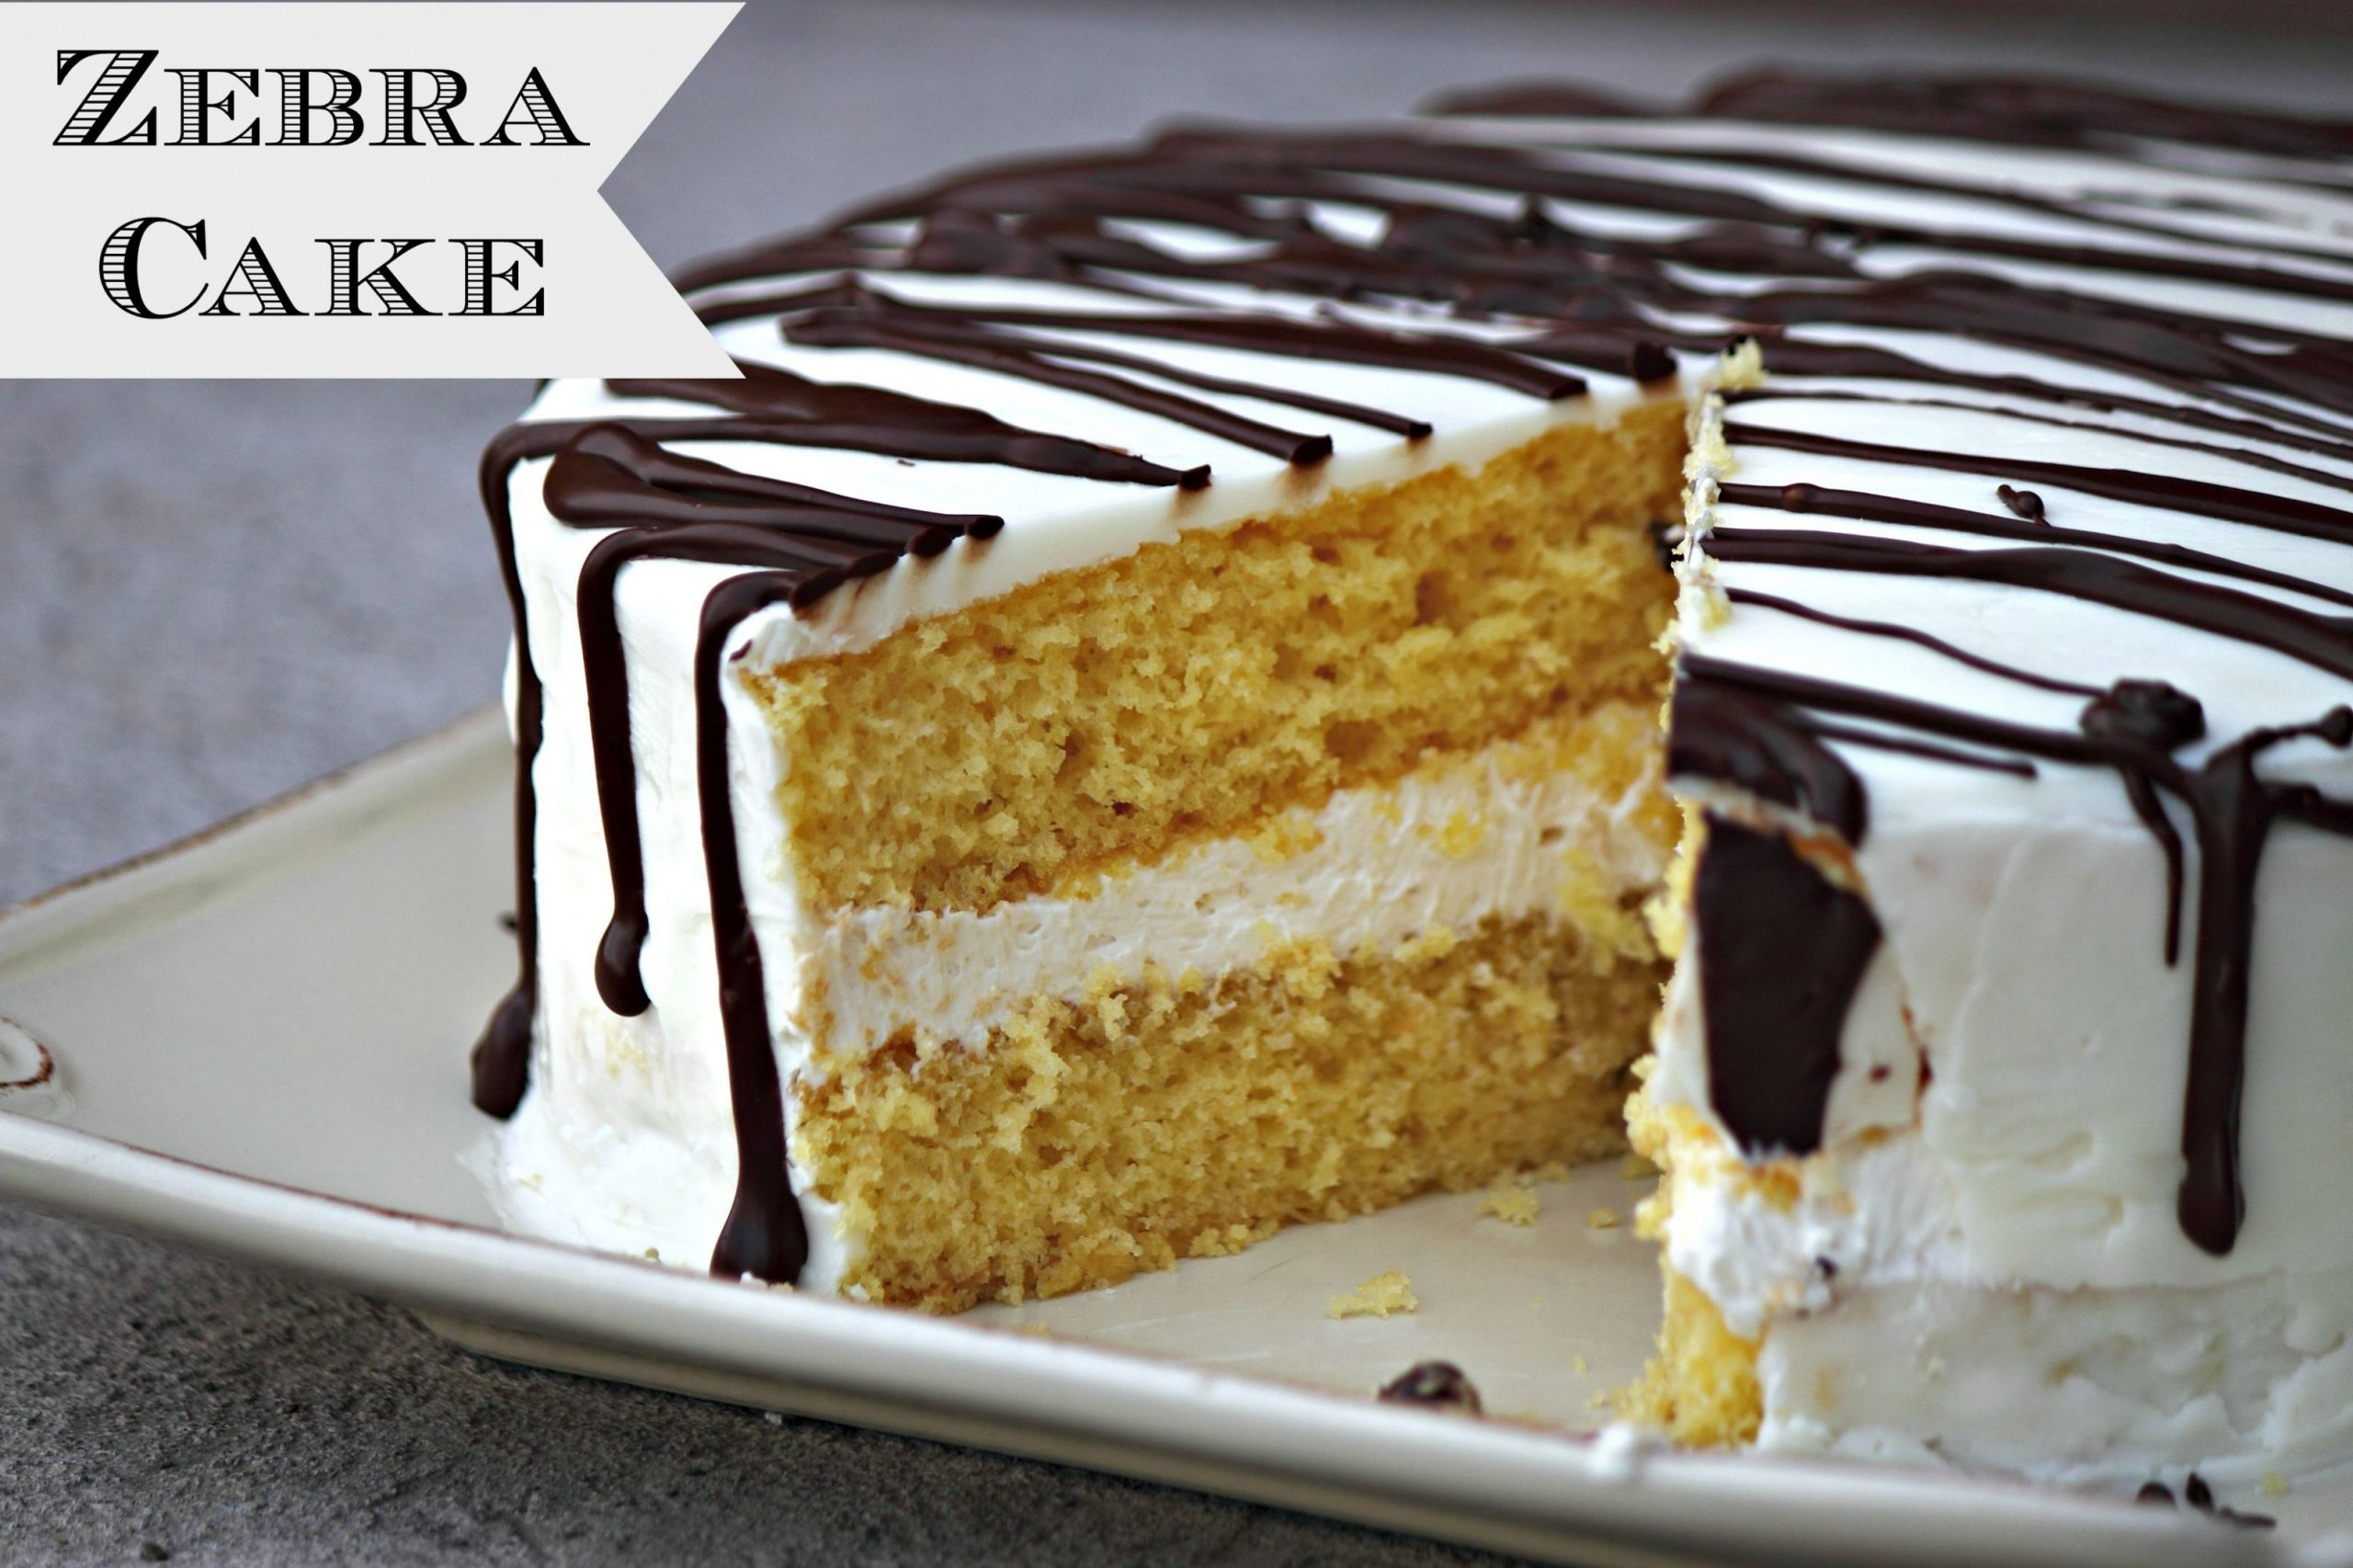 Giant Zebra Cake - Cake Recipes Zebra